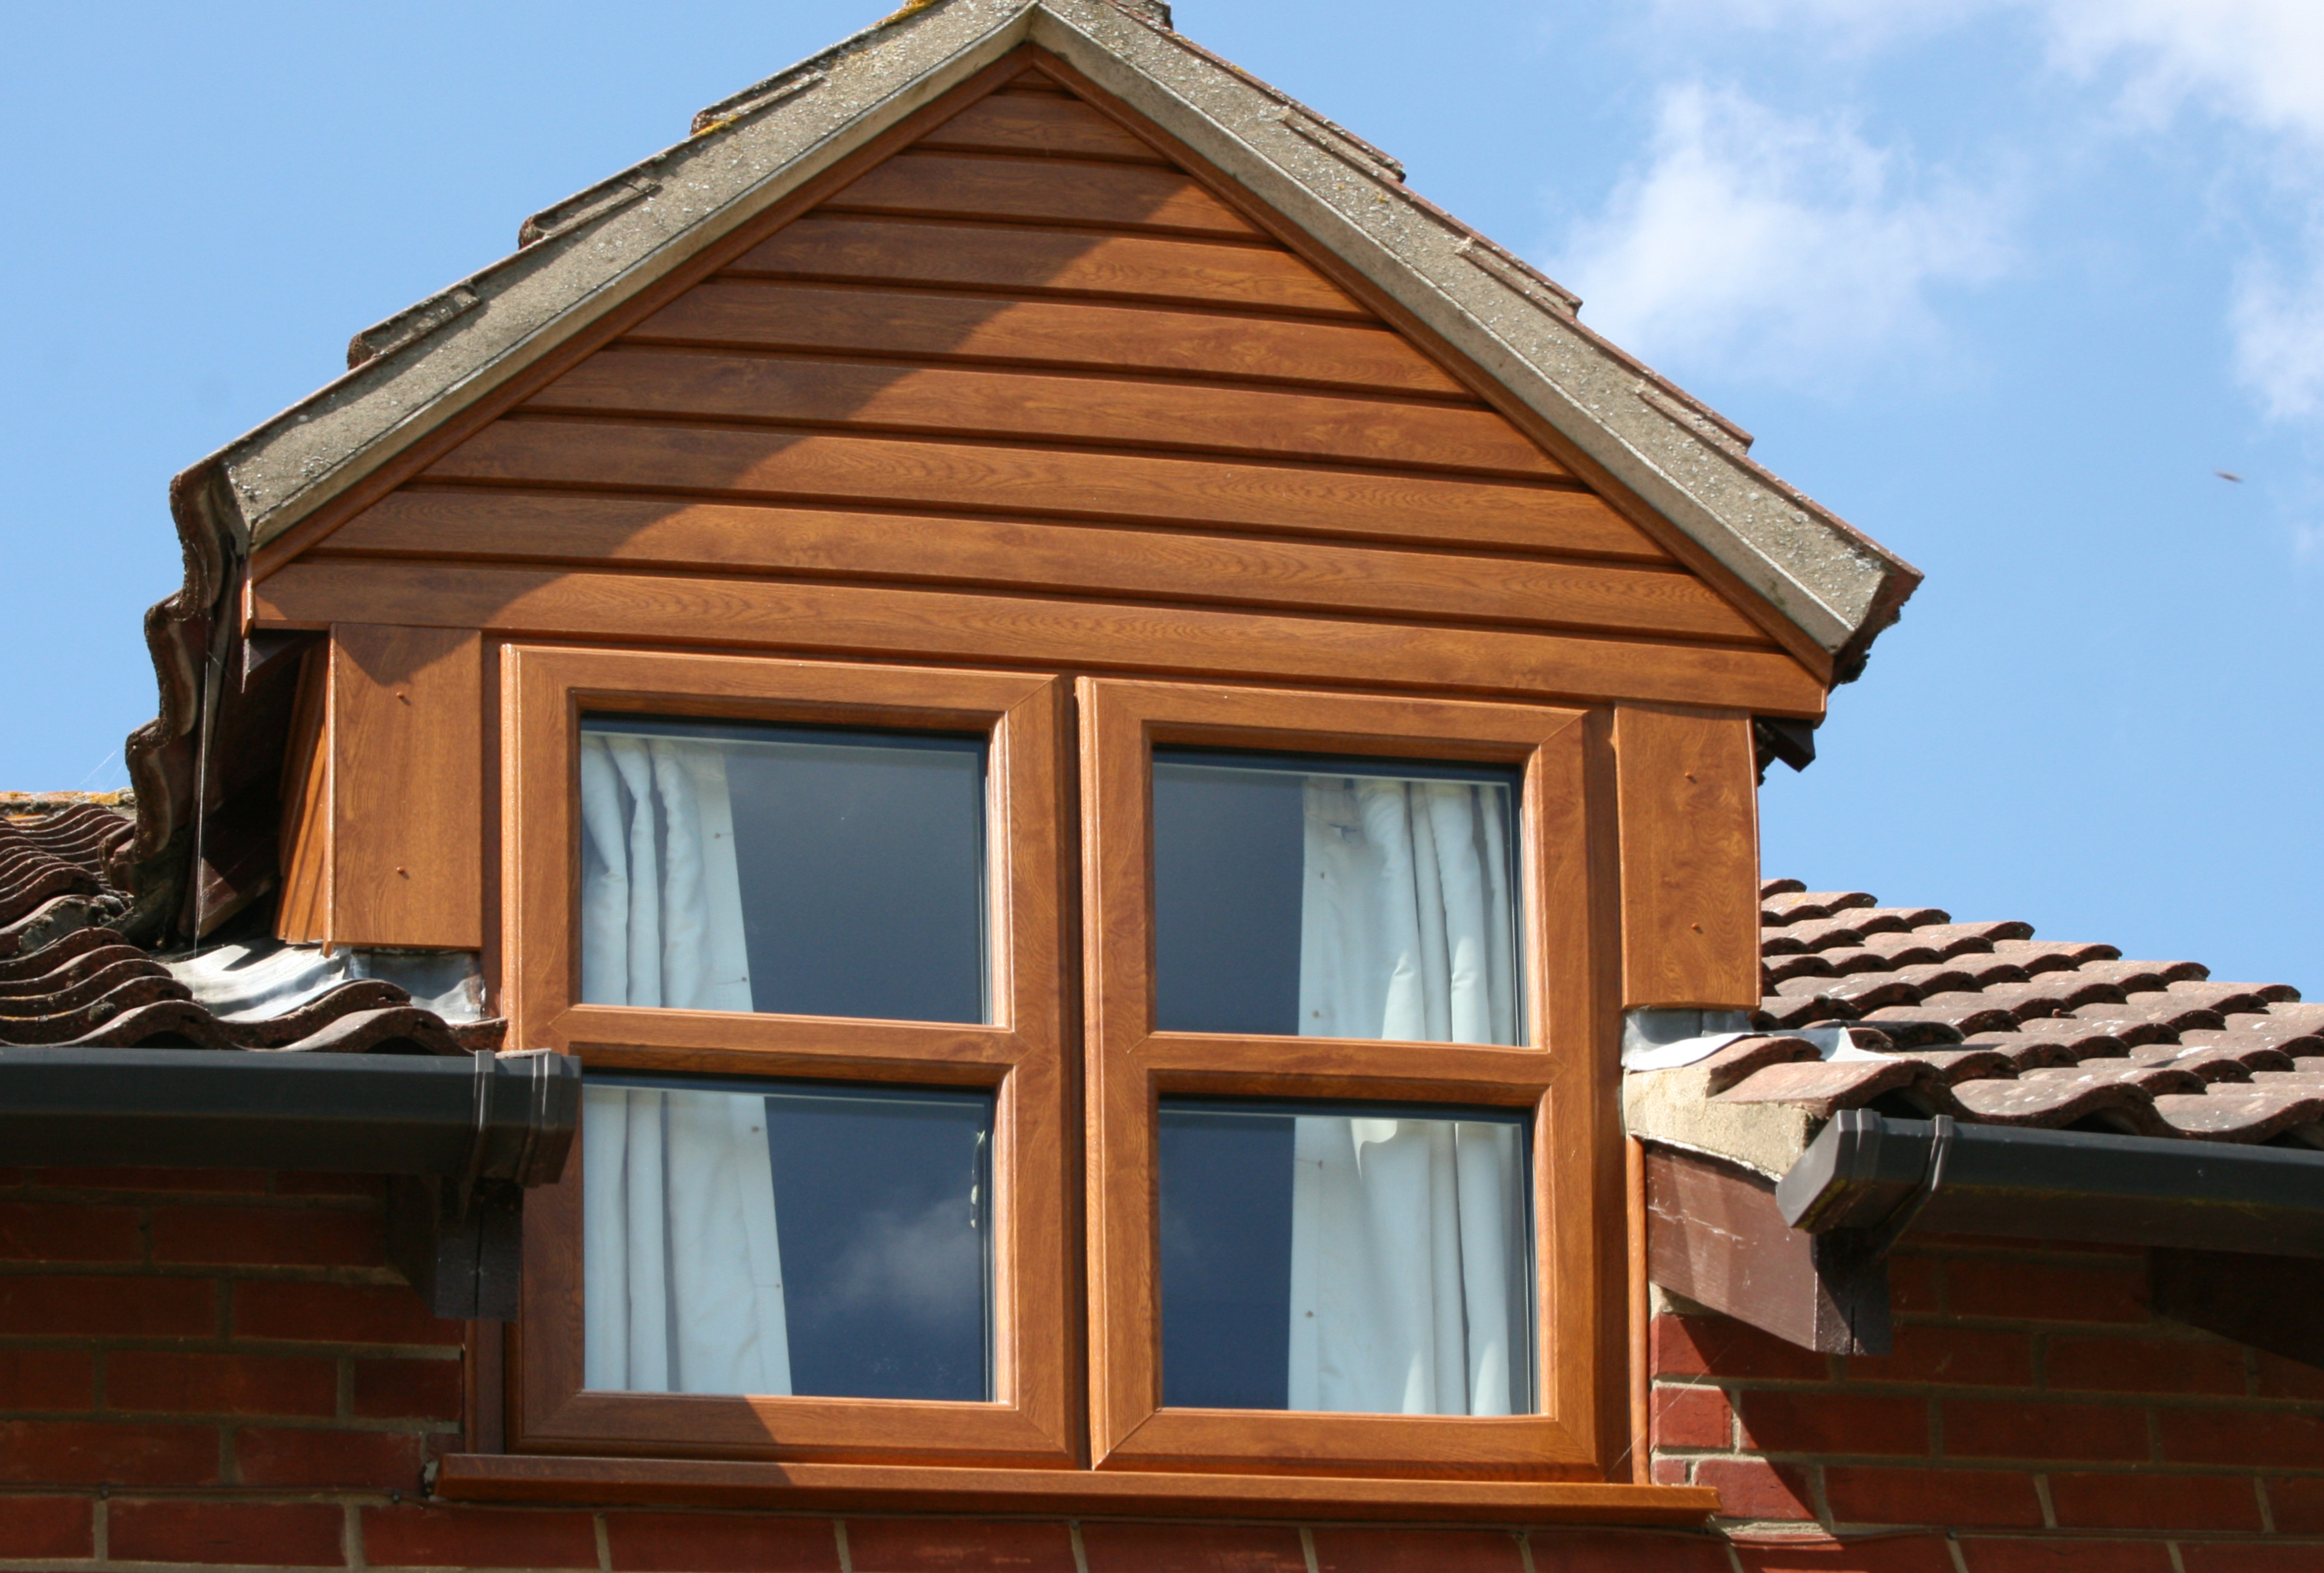 Oak effect windows and cladding